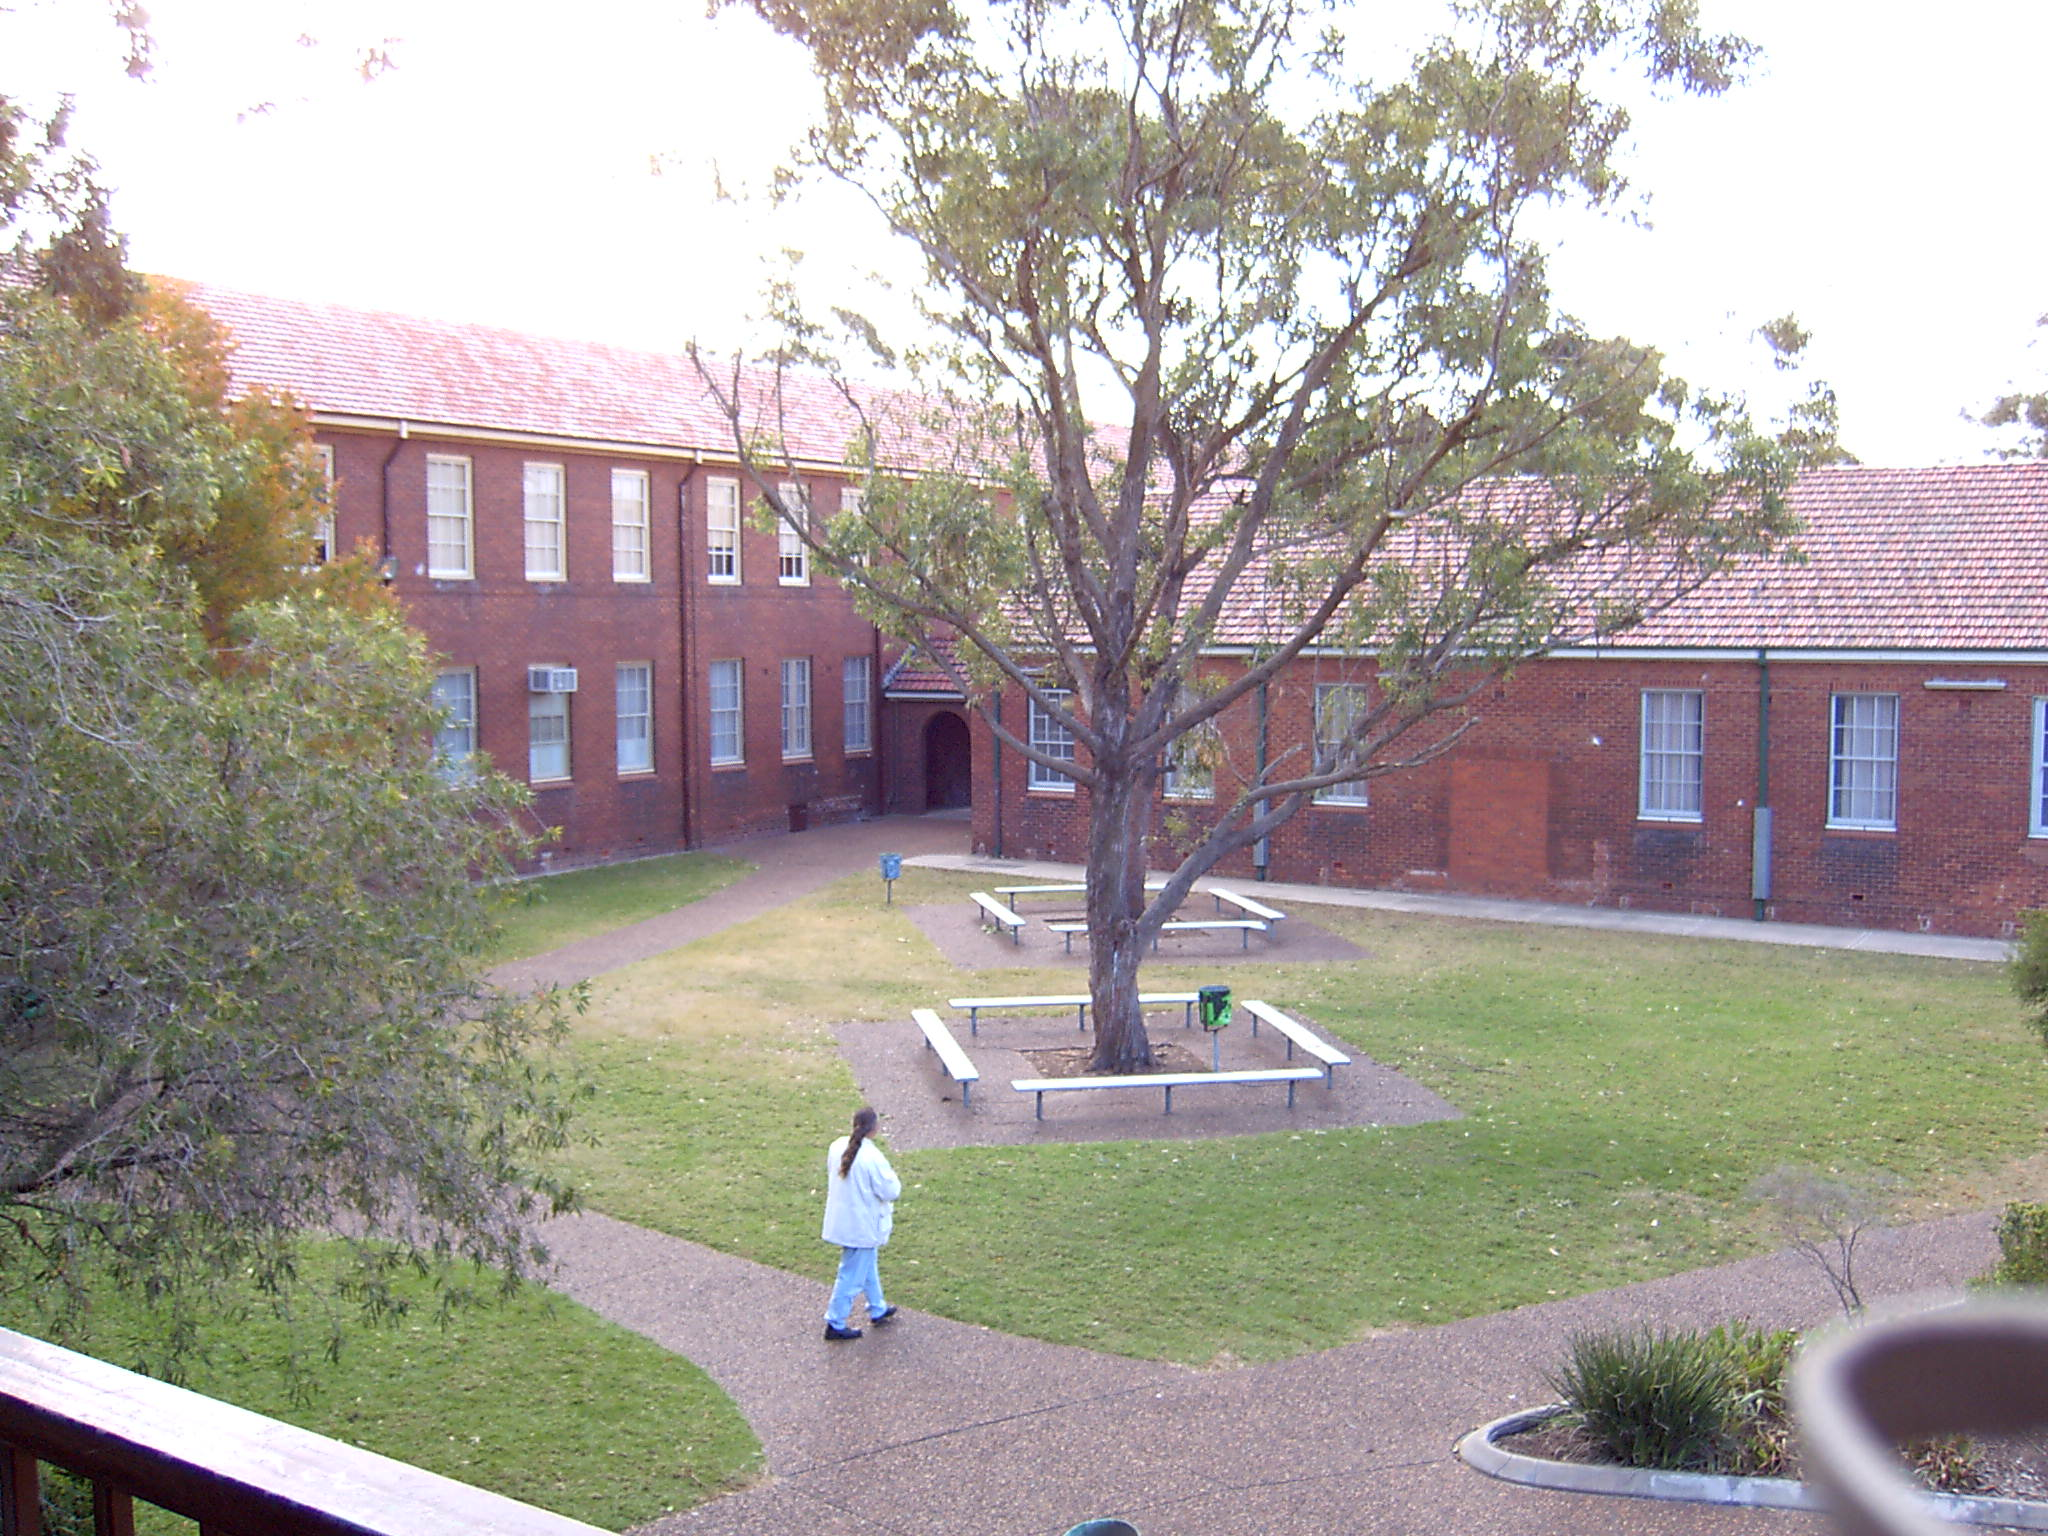 NBHS Grounds